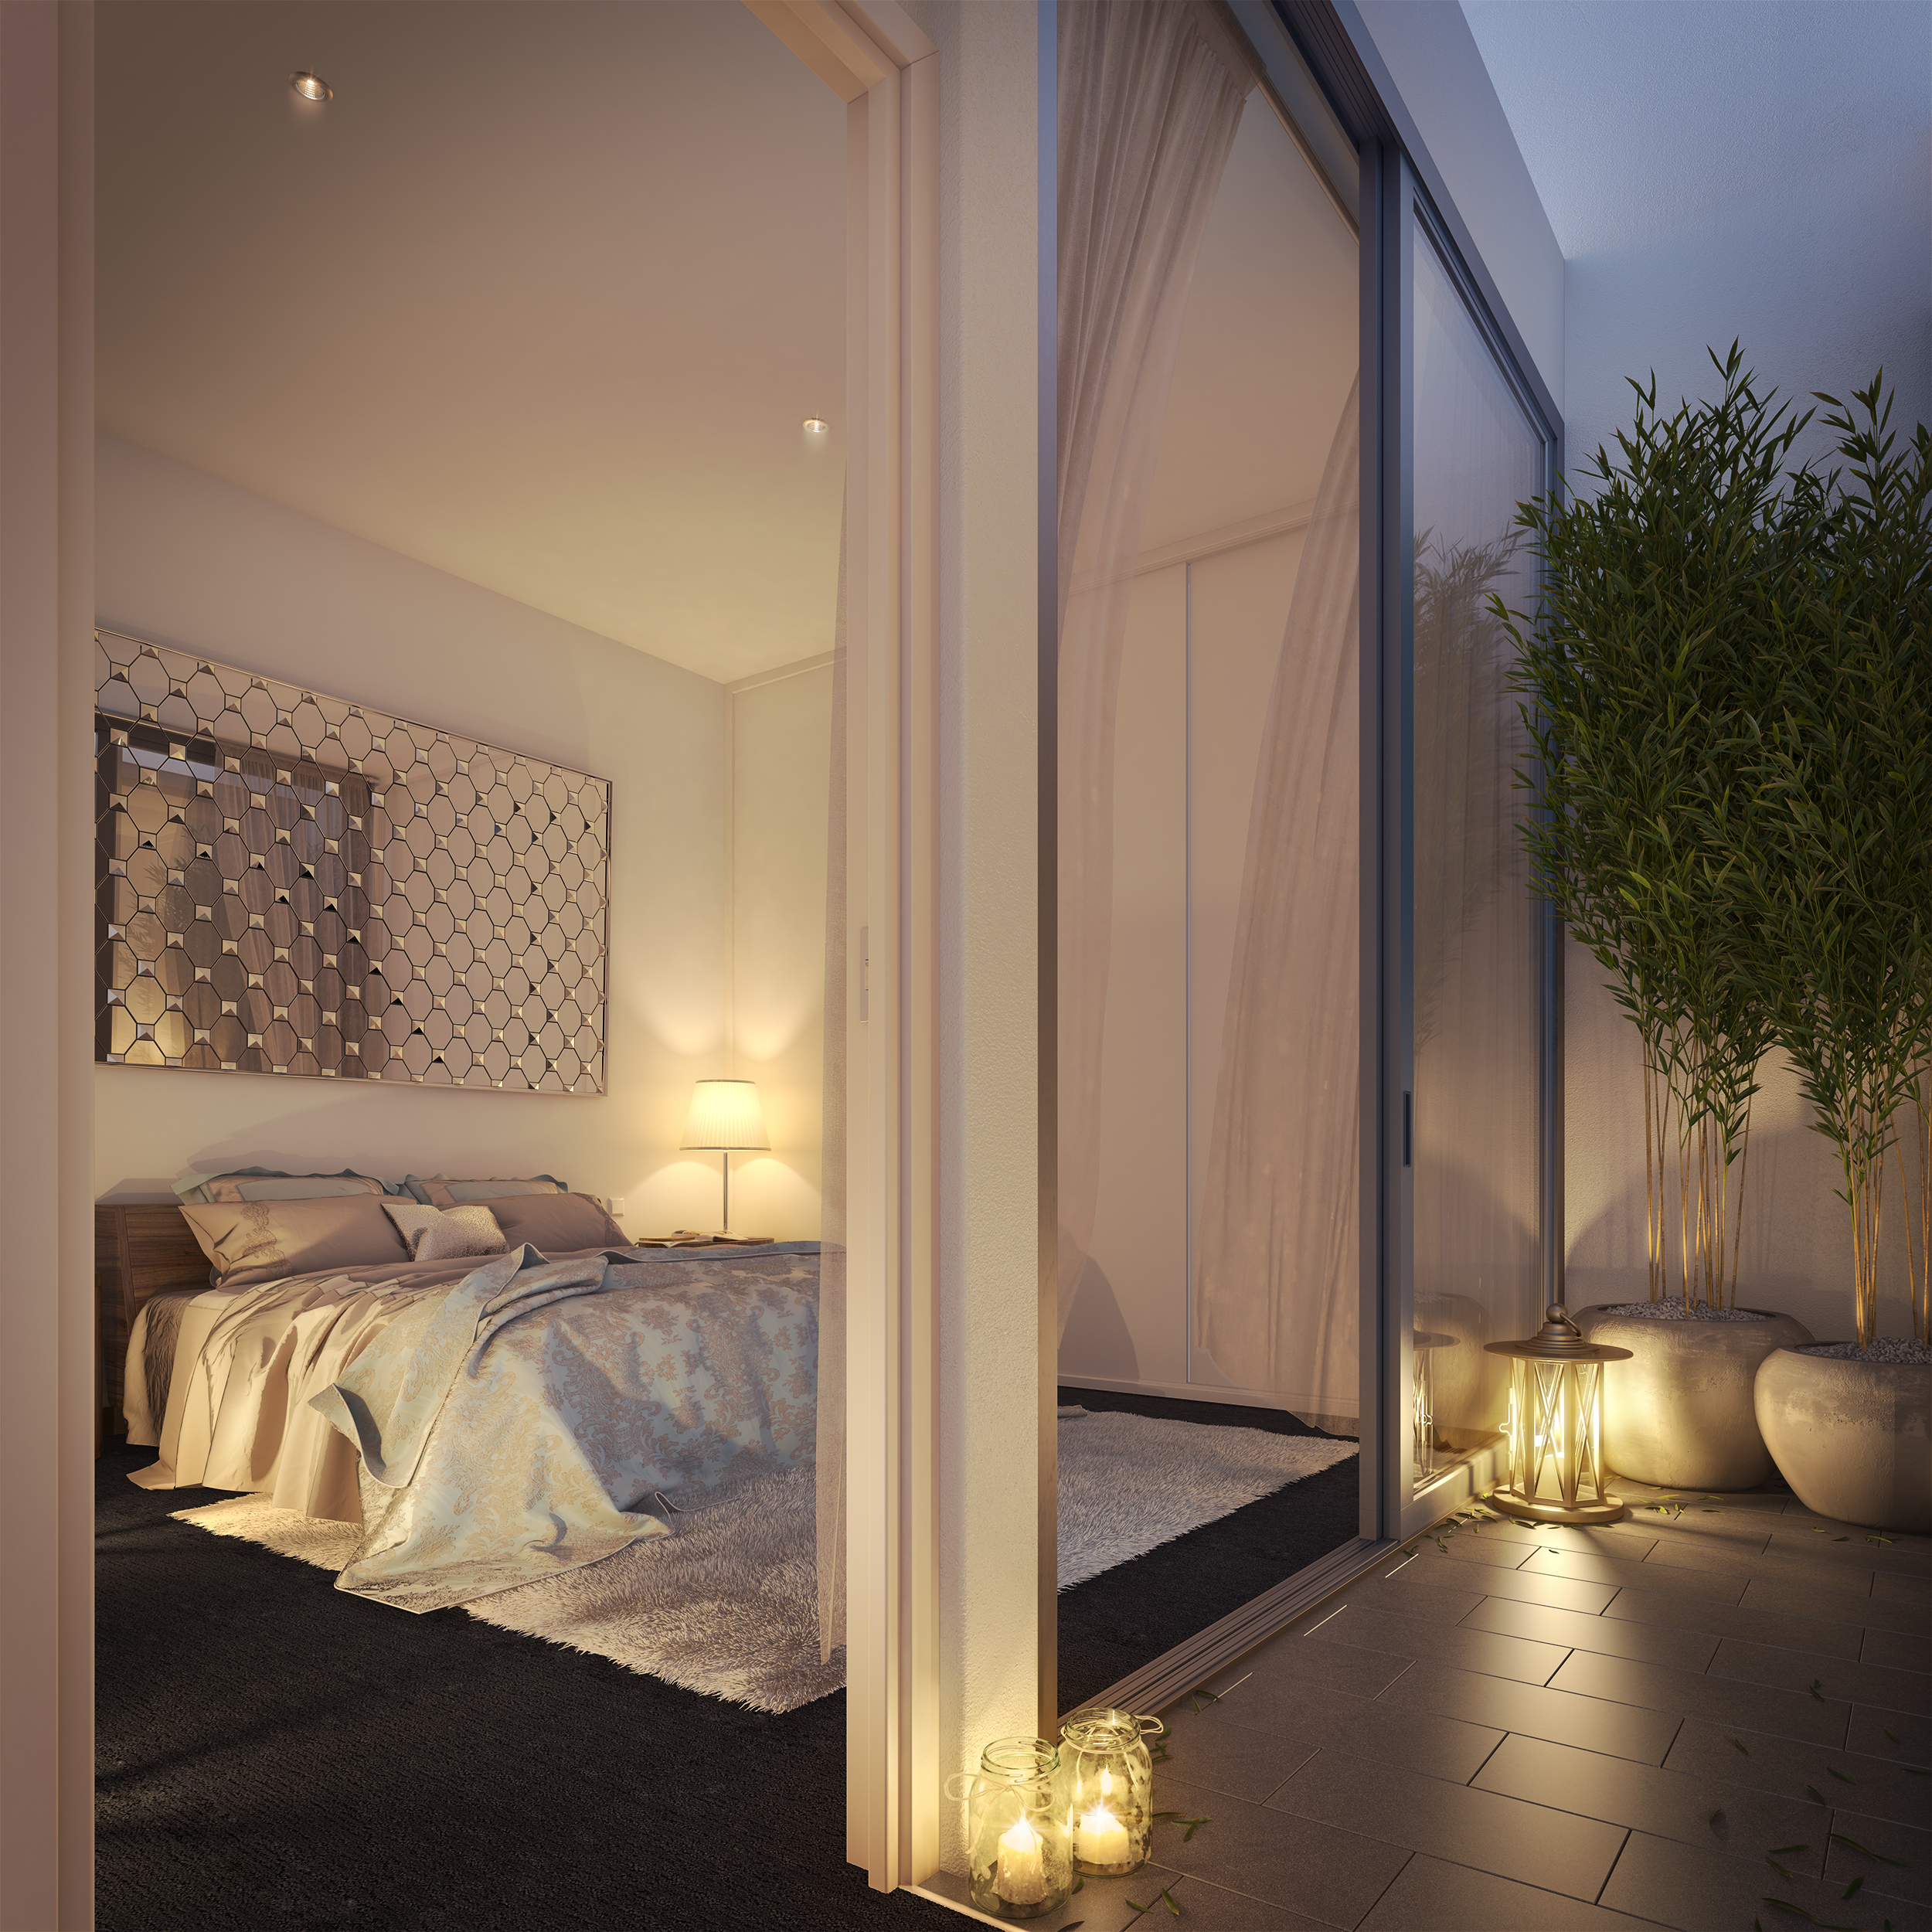 IVORY, LANE COVE - BEDROOM